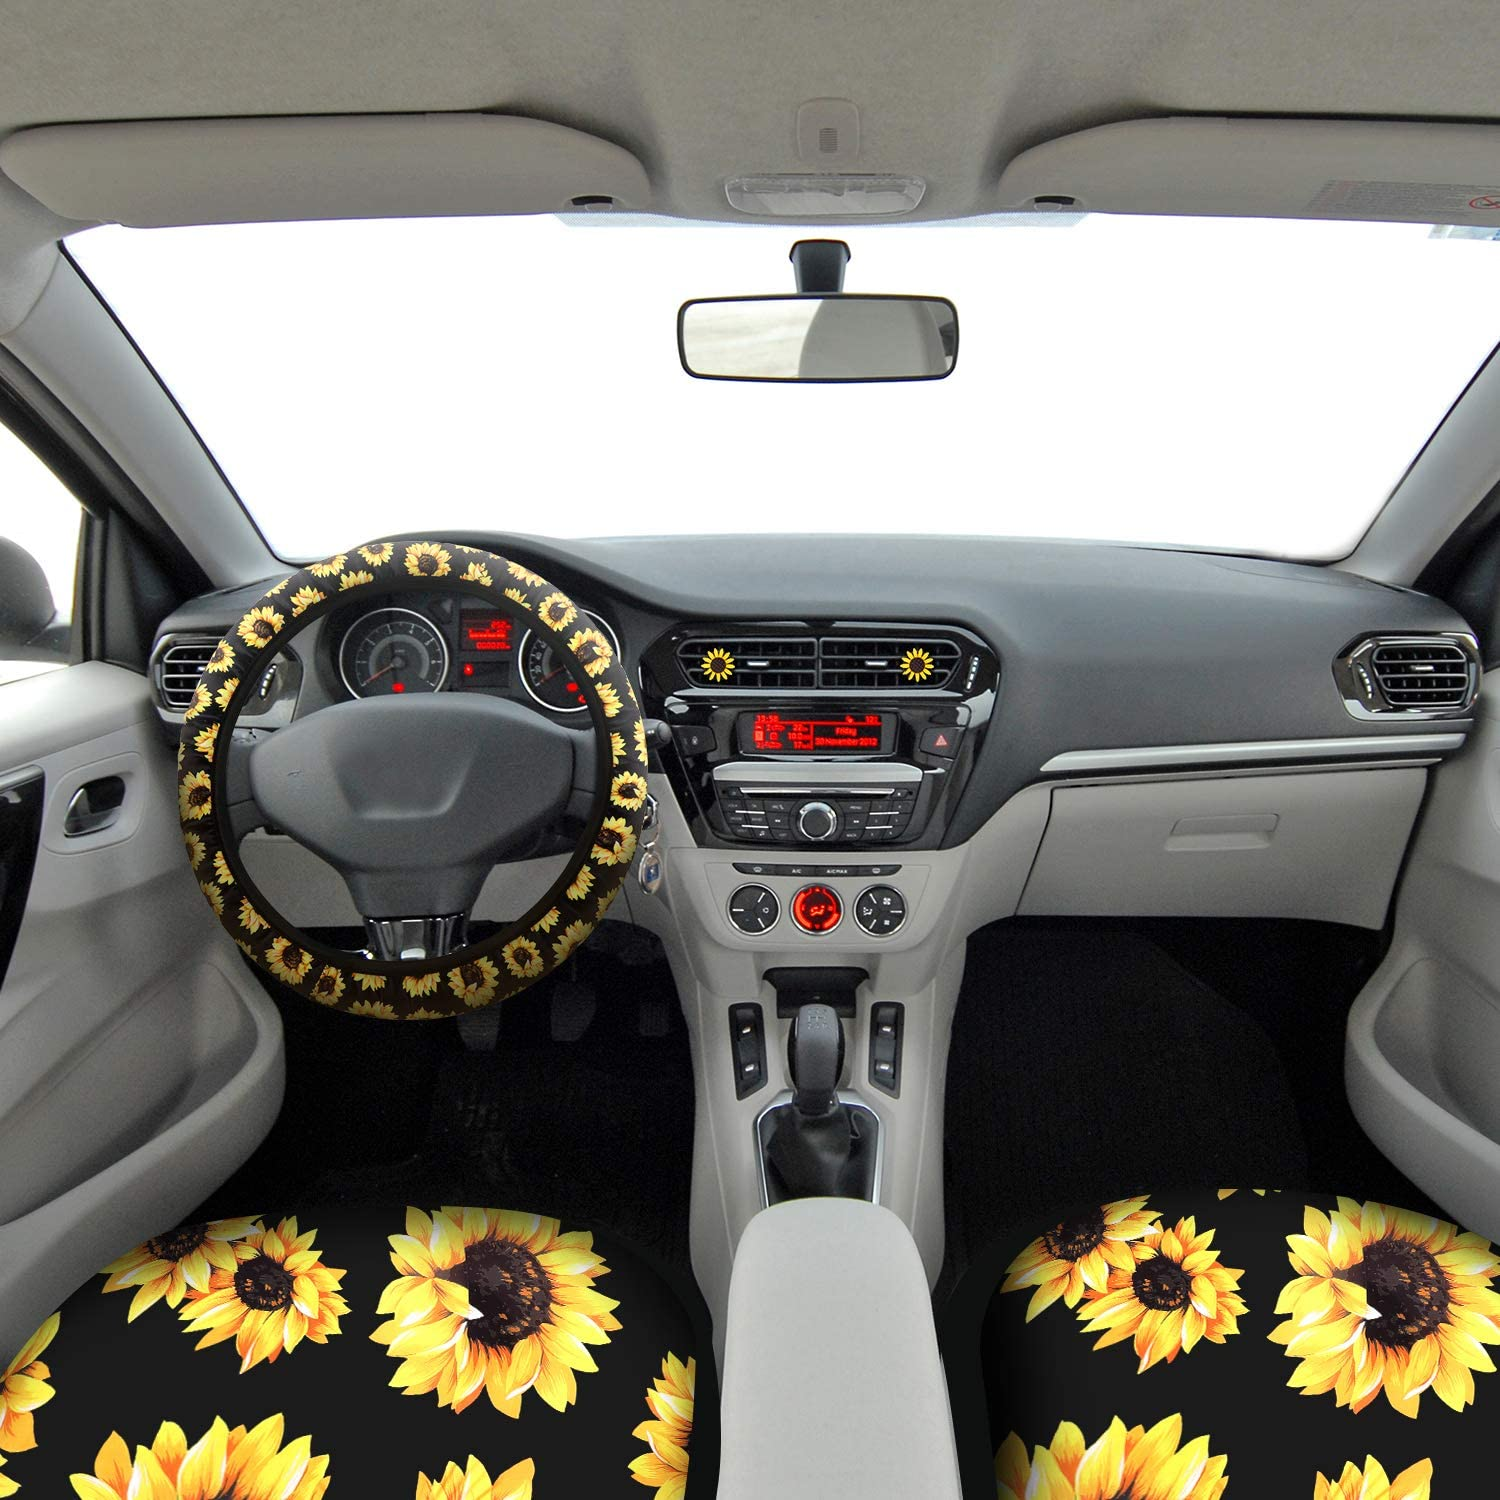 2 Car Shoulder Pads Boao 8 Pieces Sunflower Pattern Car Accessories 2 Car Vent Clips and 1 Aluminum Metal License Plate Cover 1 Steering Wheel Cover Include 2 Sunflower Front Seat Covers